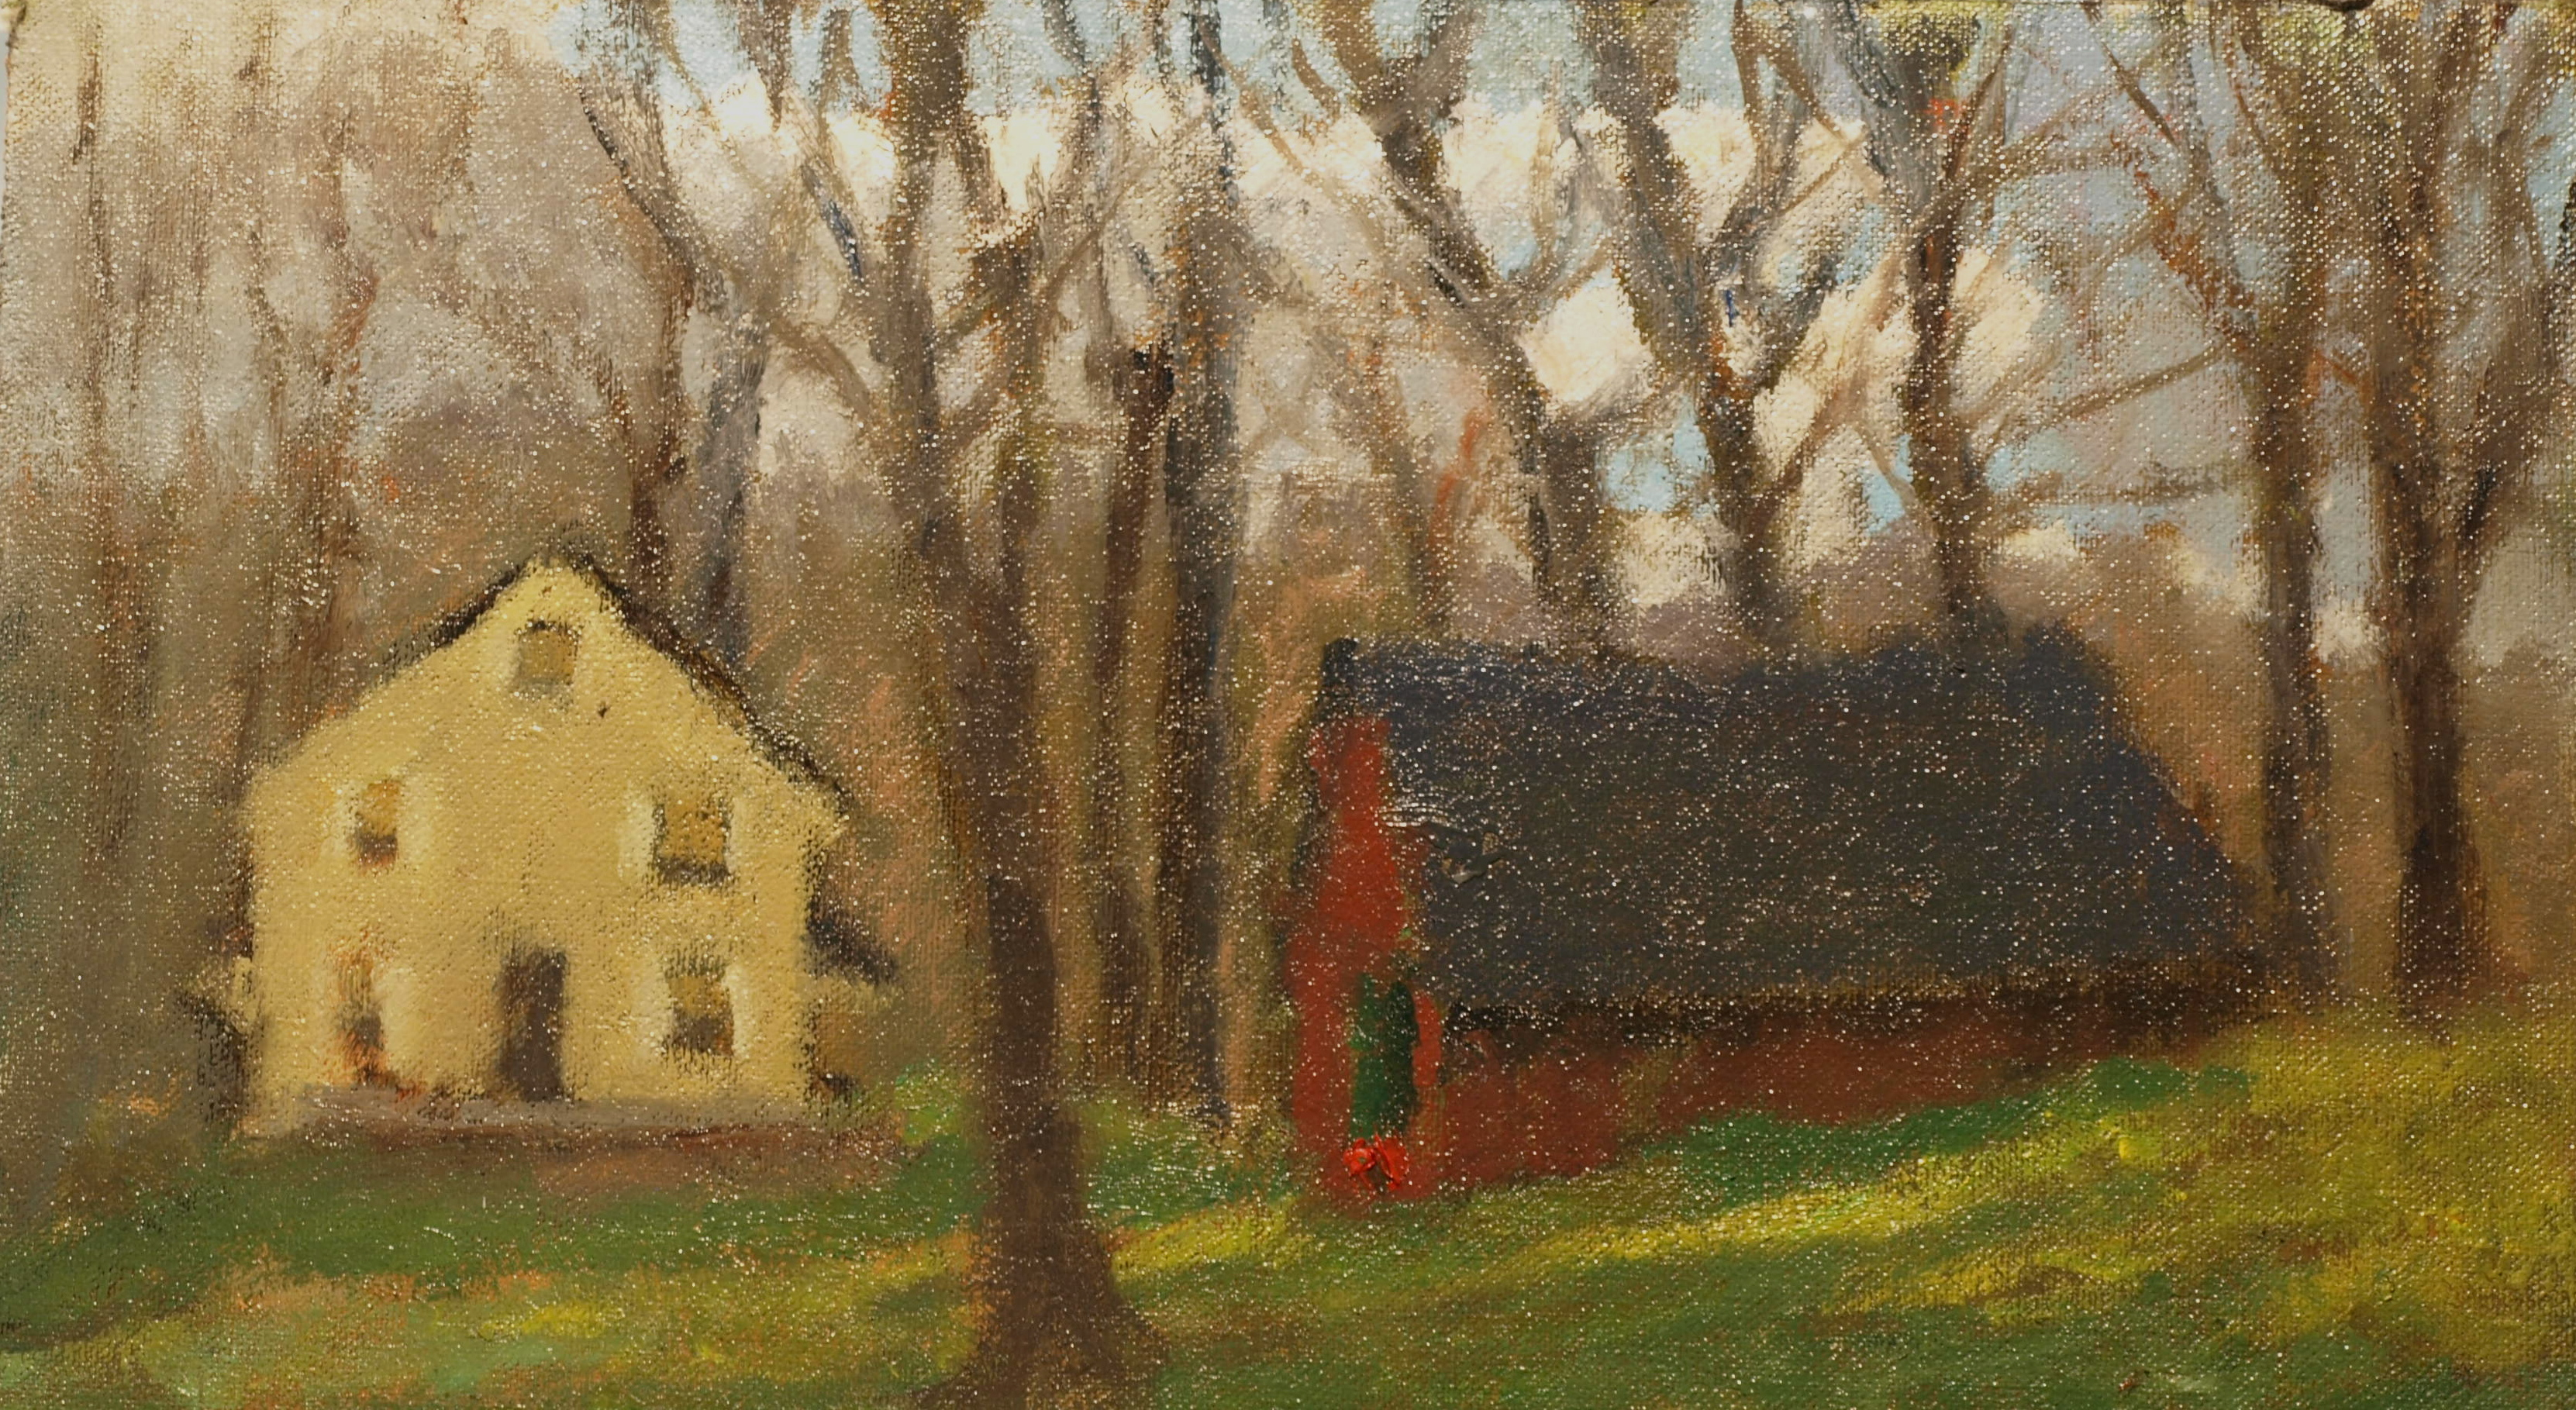 The Edelson Place, Oil on Canvas on Panel, 8 x 14 Inches, by Richard Stalter, $225